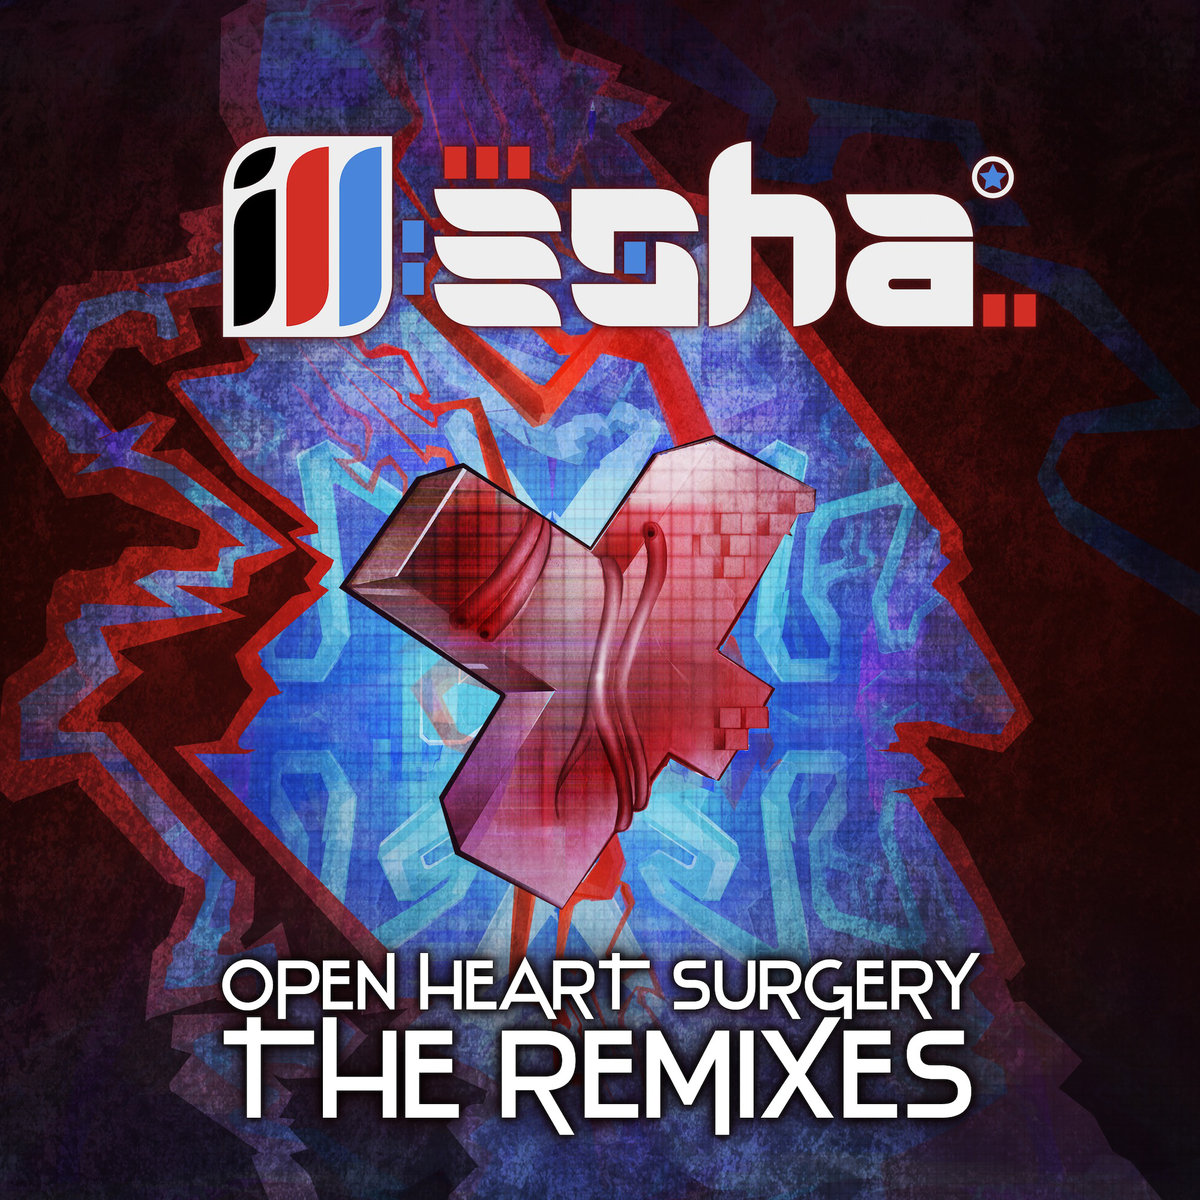 ill-esha - New Beginnings (CloZee Remix) @ 'Open Heart Surgery: The Remixes' album (Austin)